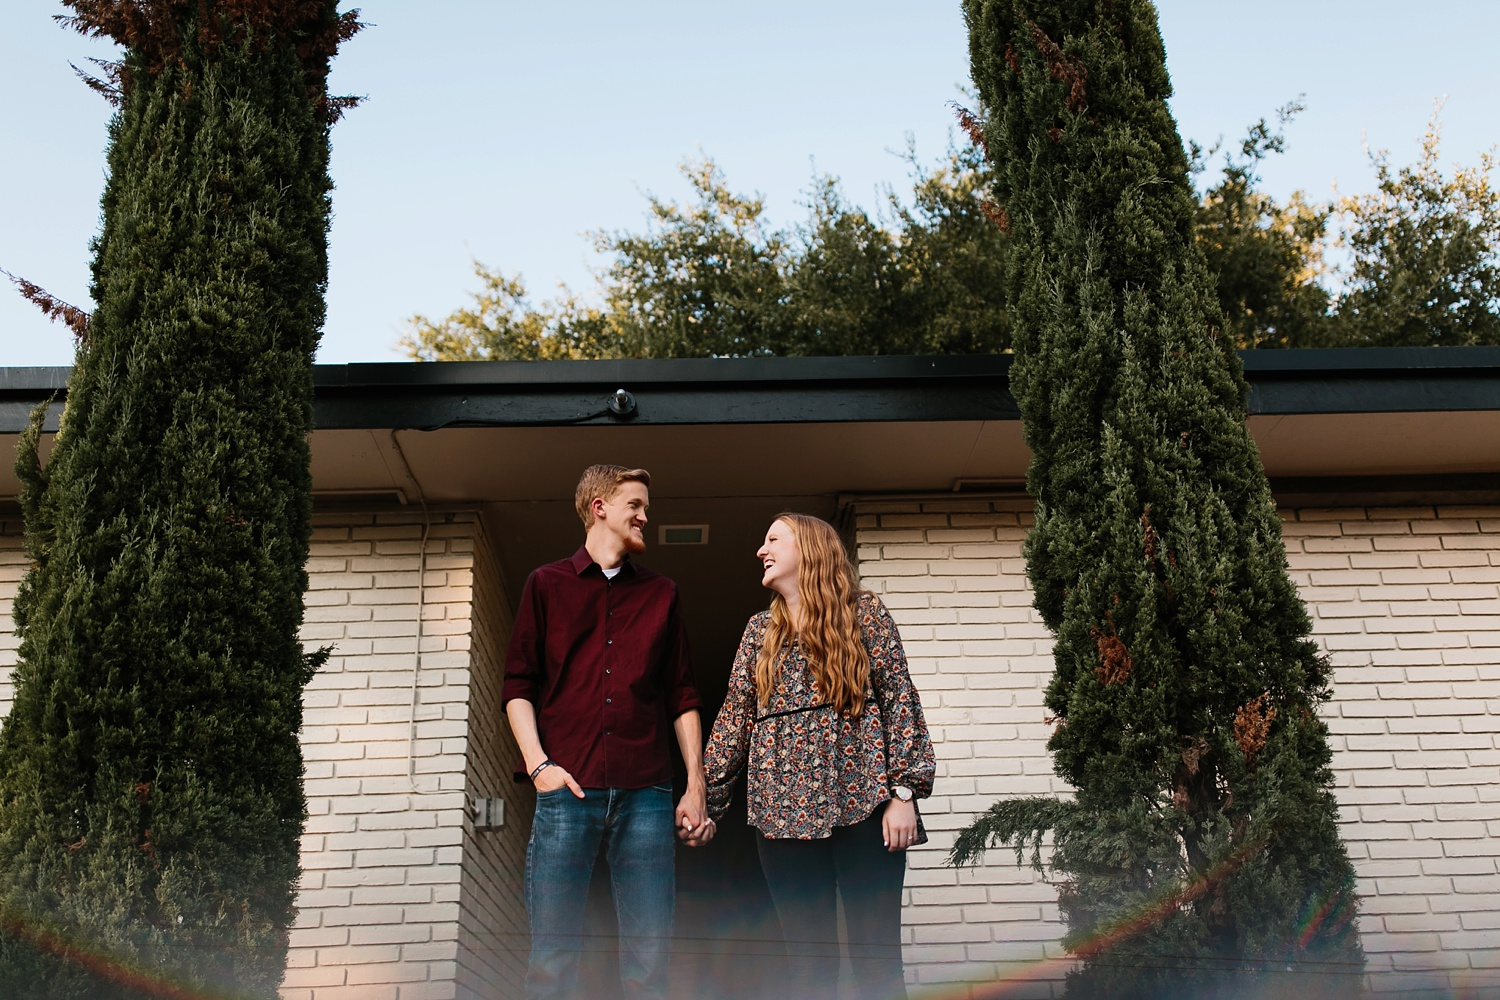 Kayla + Alex _ a joyful and loving engagement shoot in Waco, Texas by North Texas Wedding Photographer Rachel Meagan Photography _29